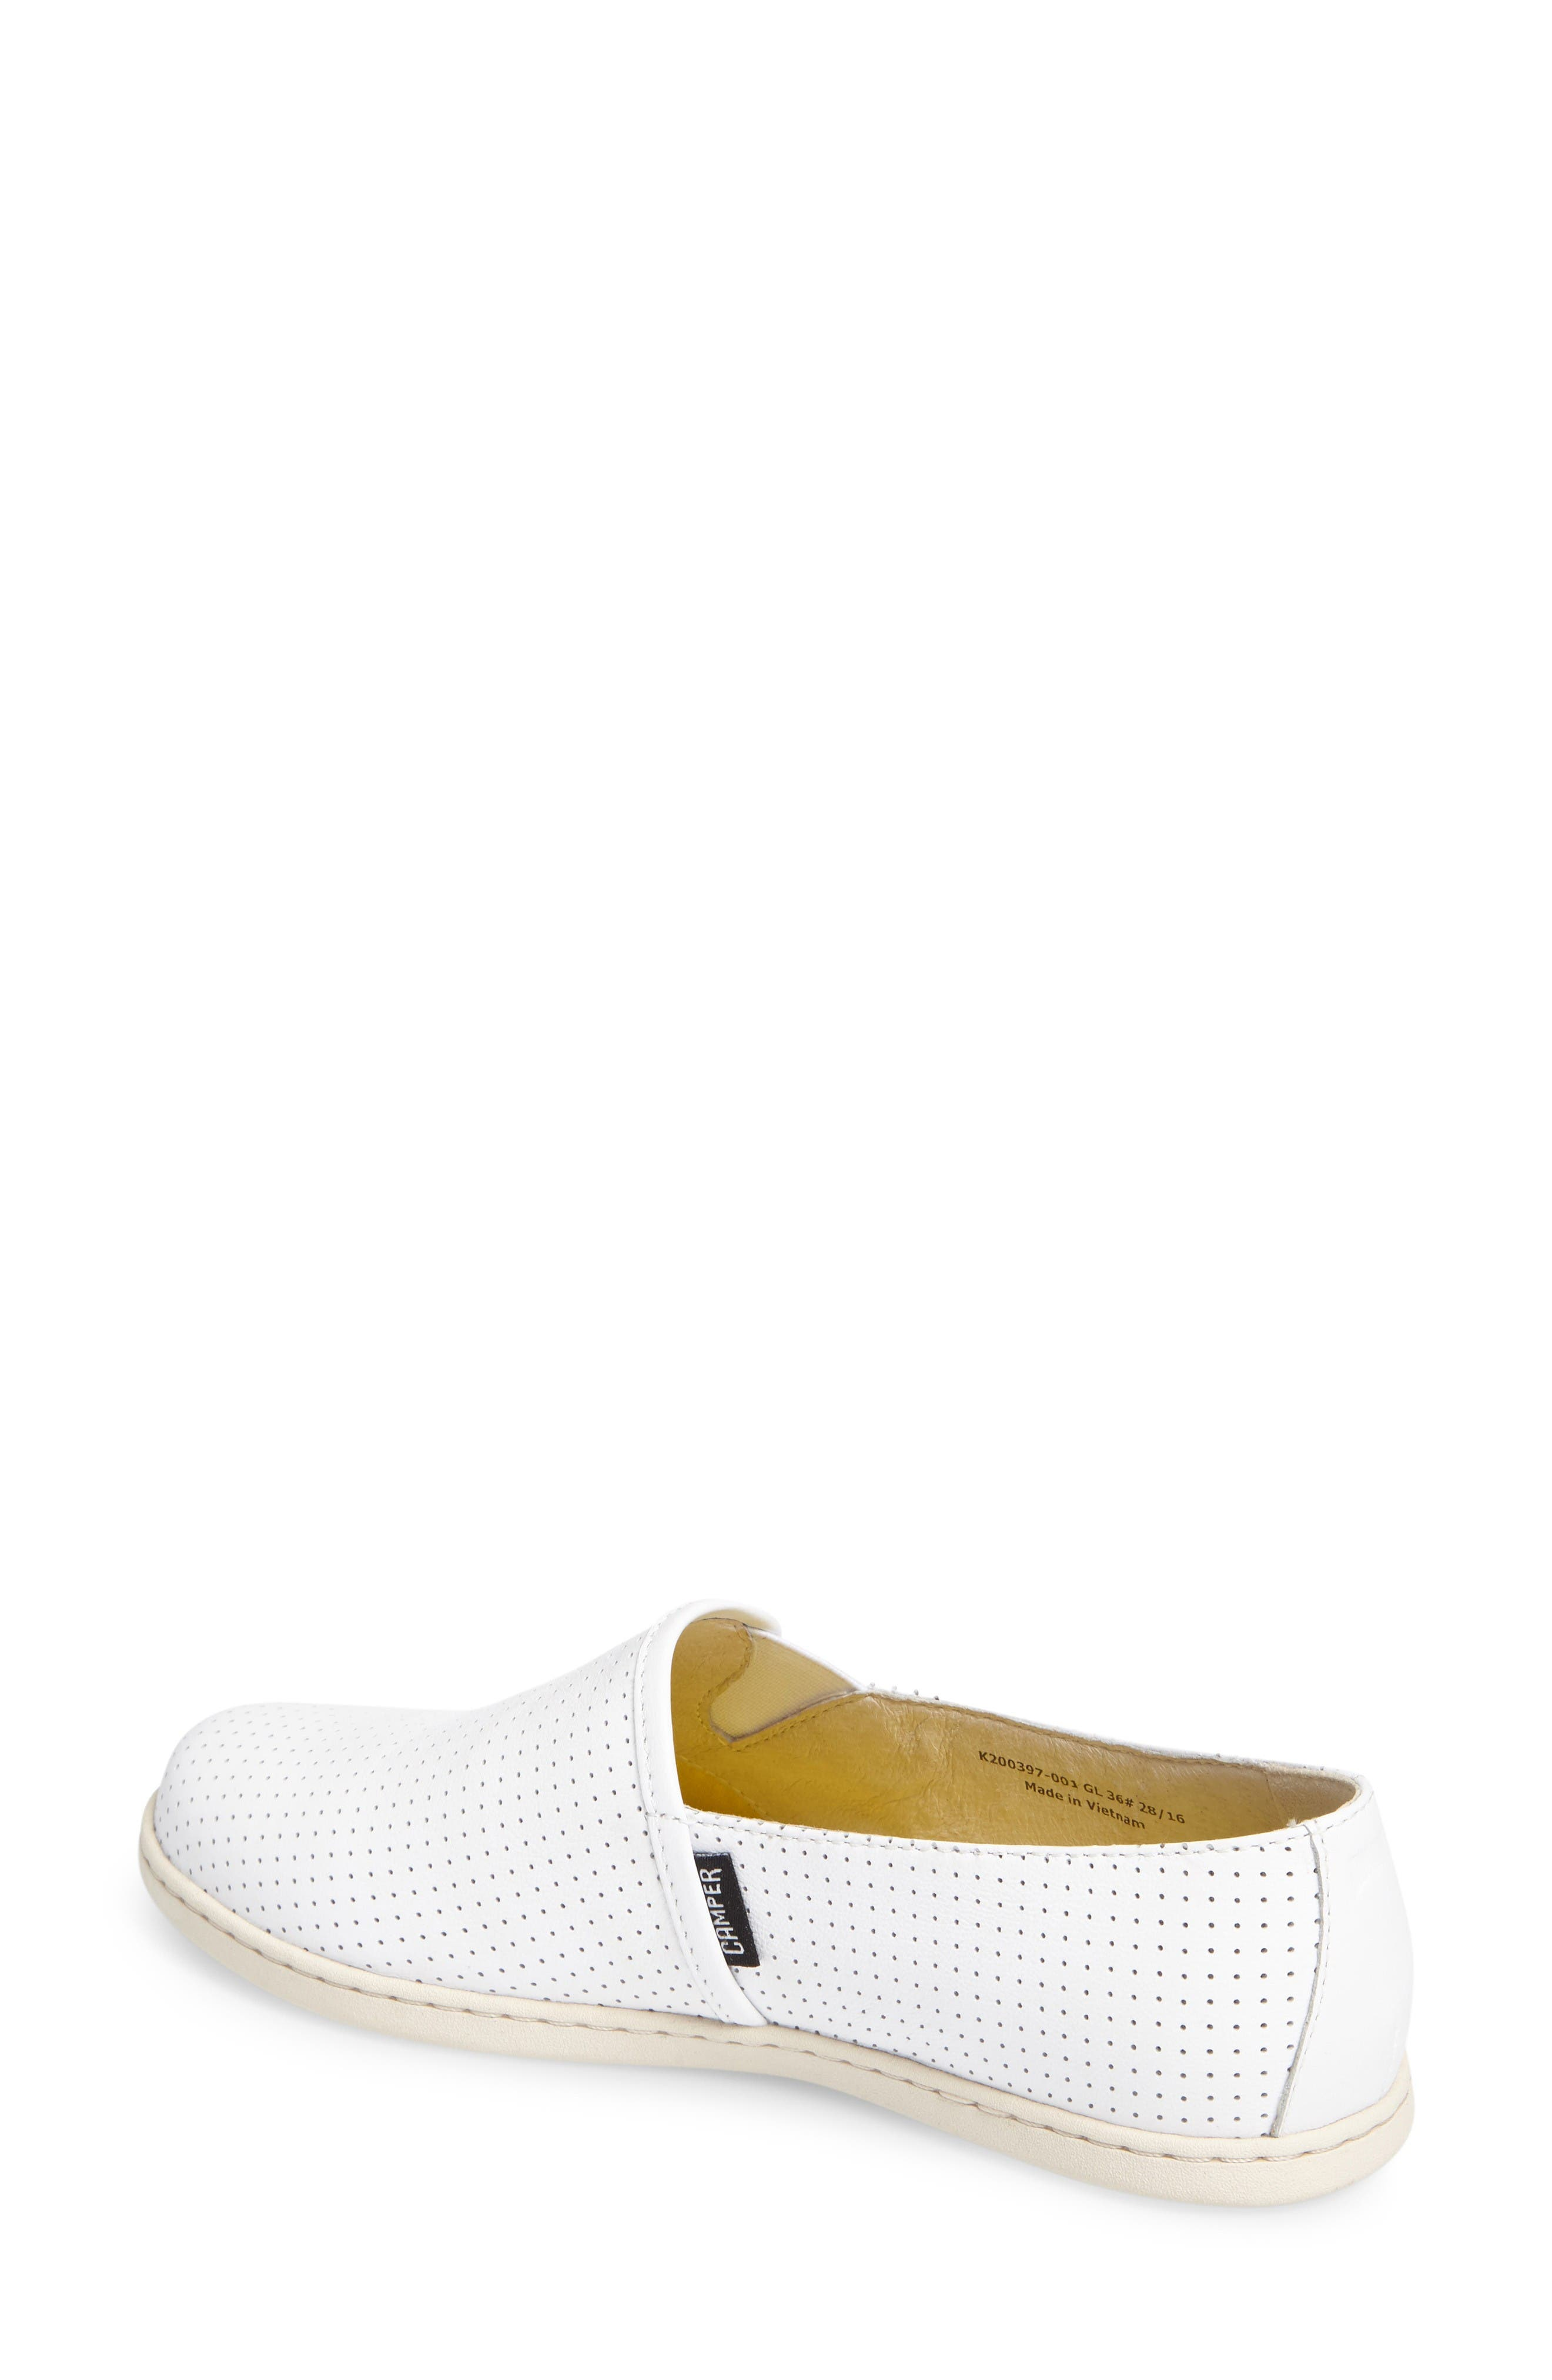 Alternate Image 2  - Camper Uno Perforated Slip-On Sneaker (Women)